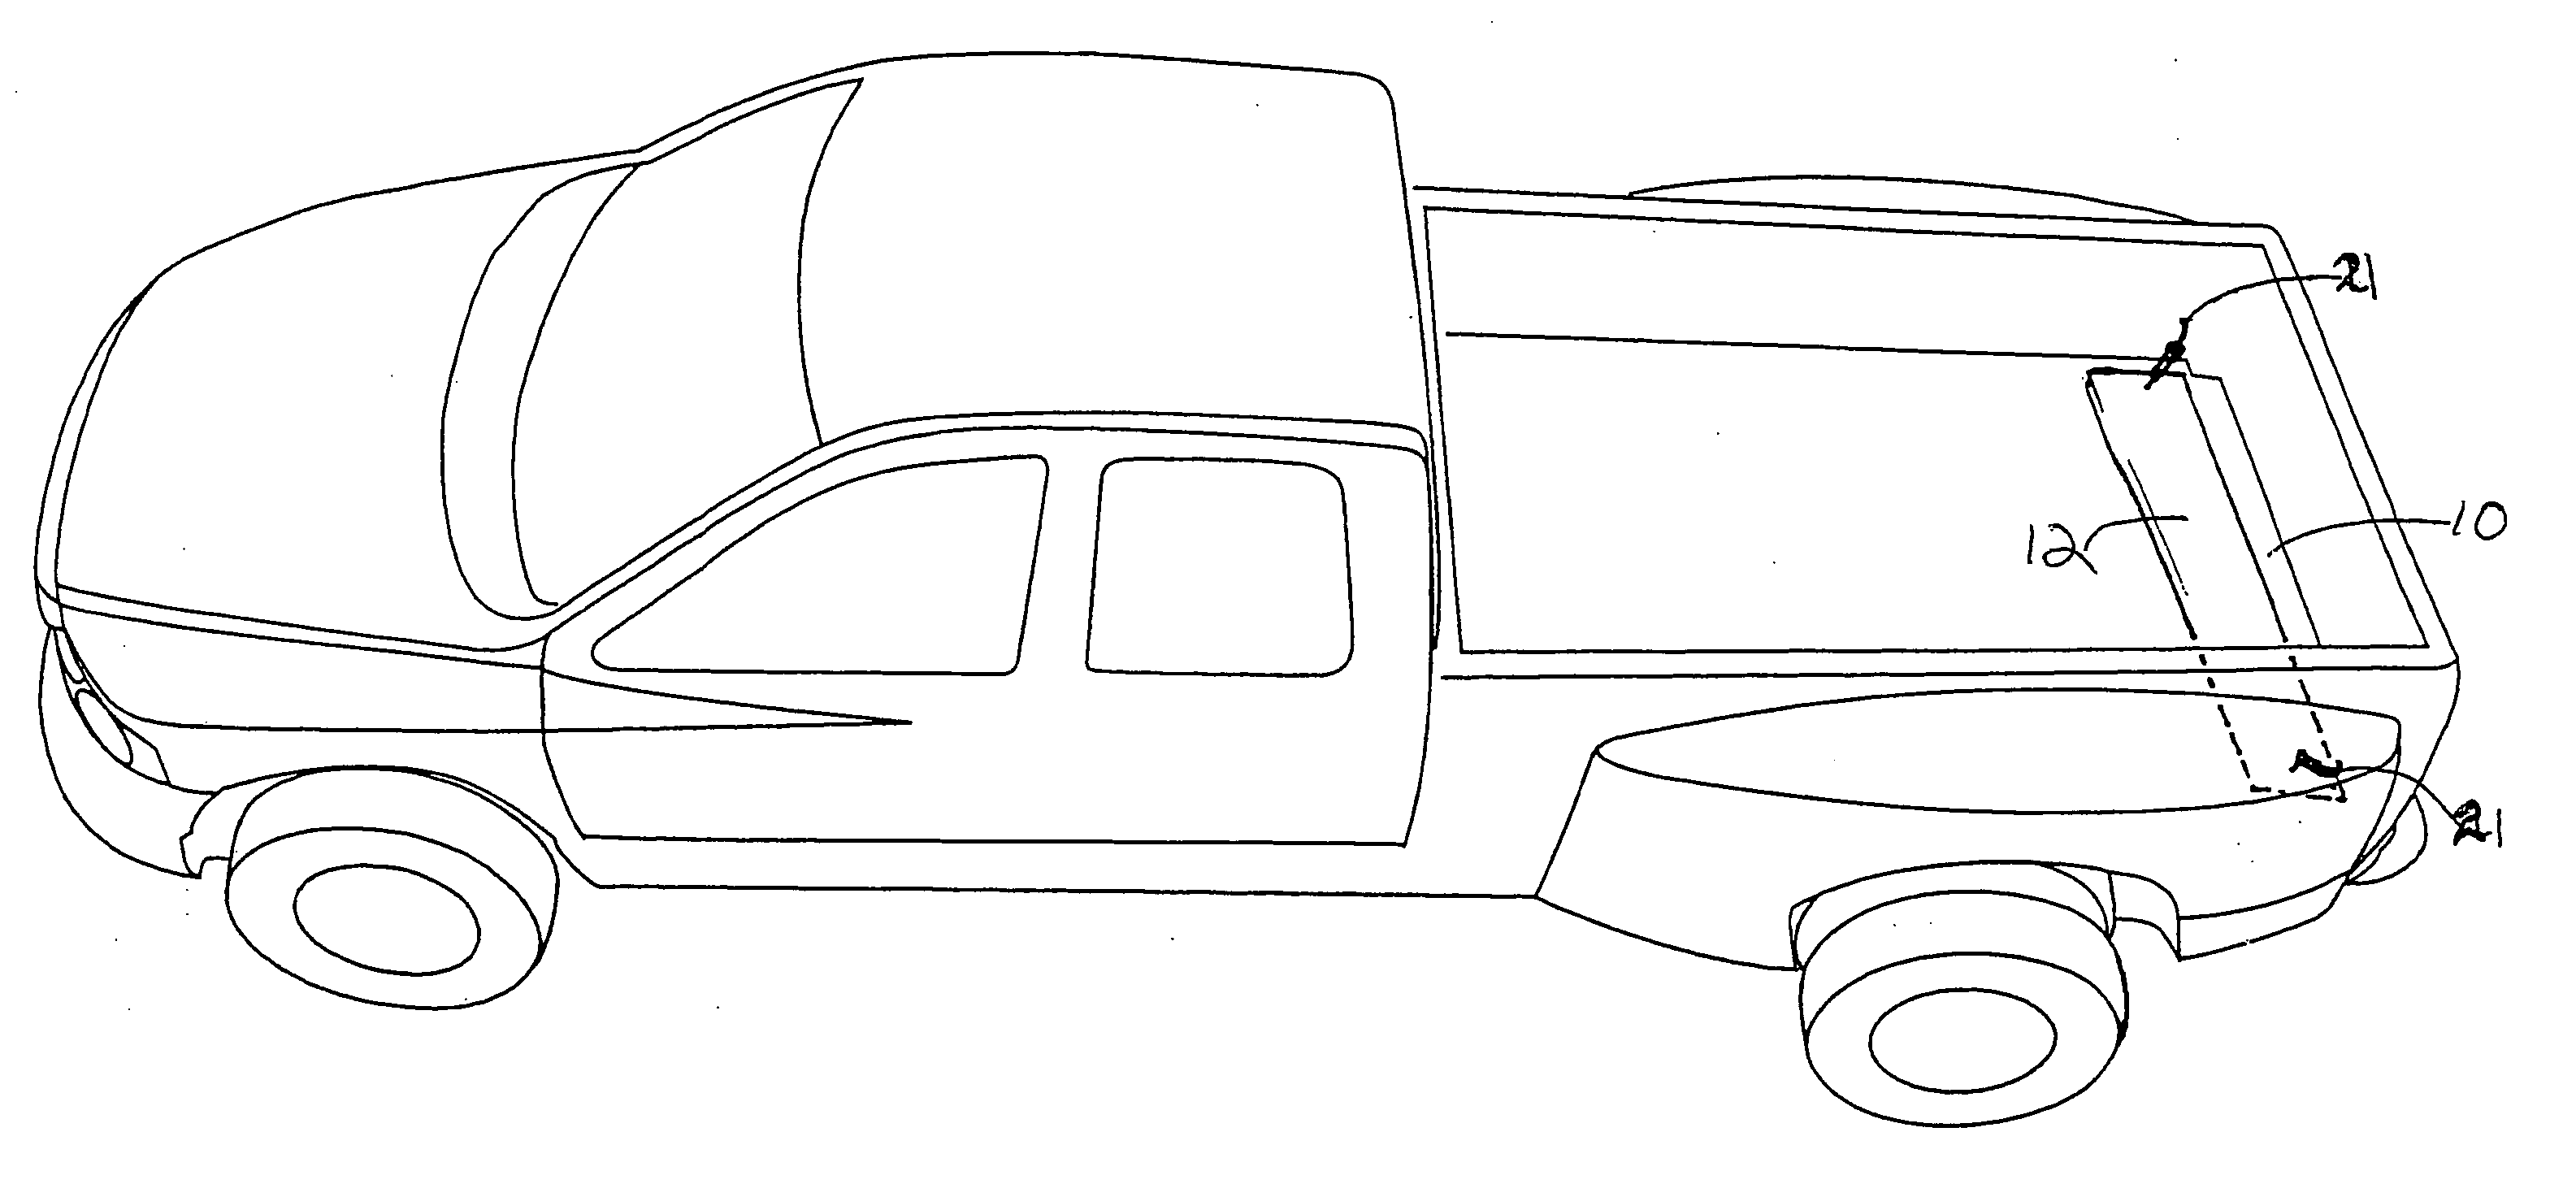 Ford Truck Outline Drawings